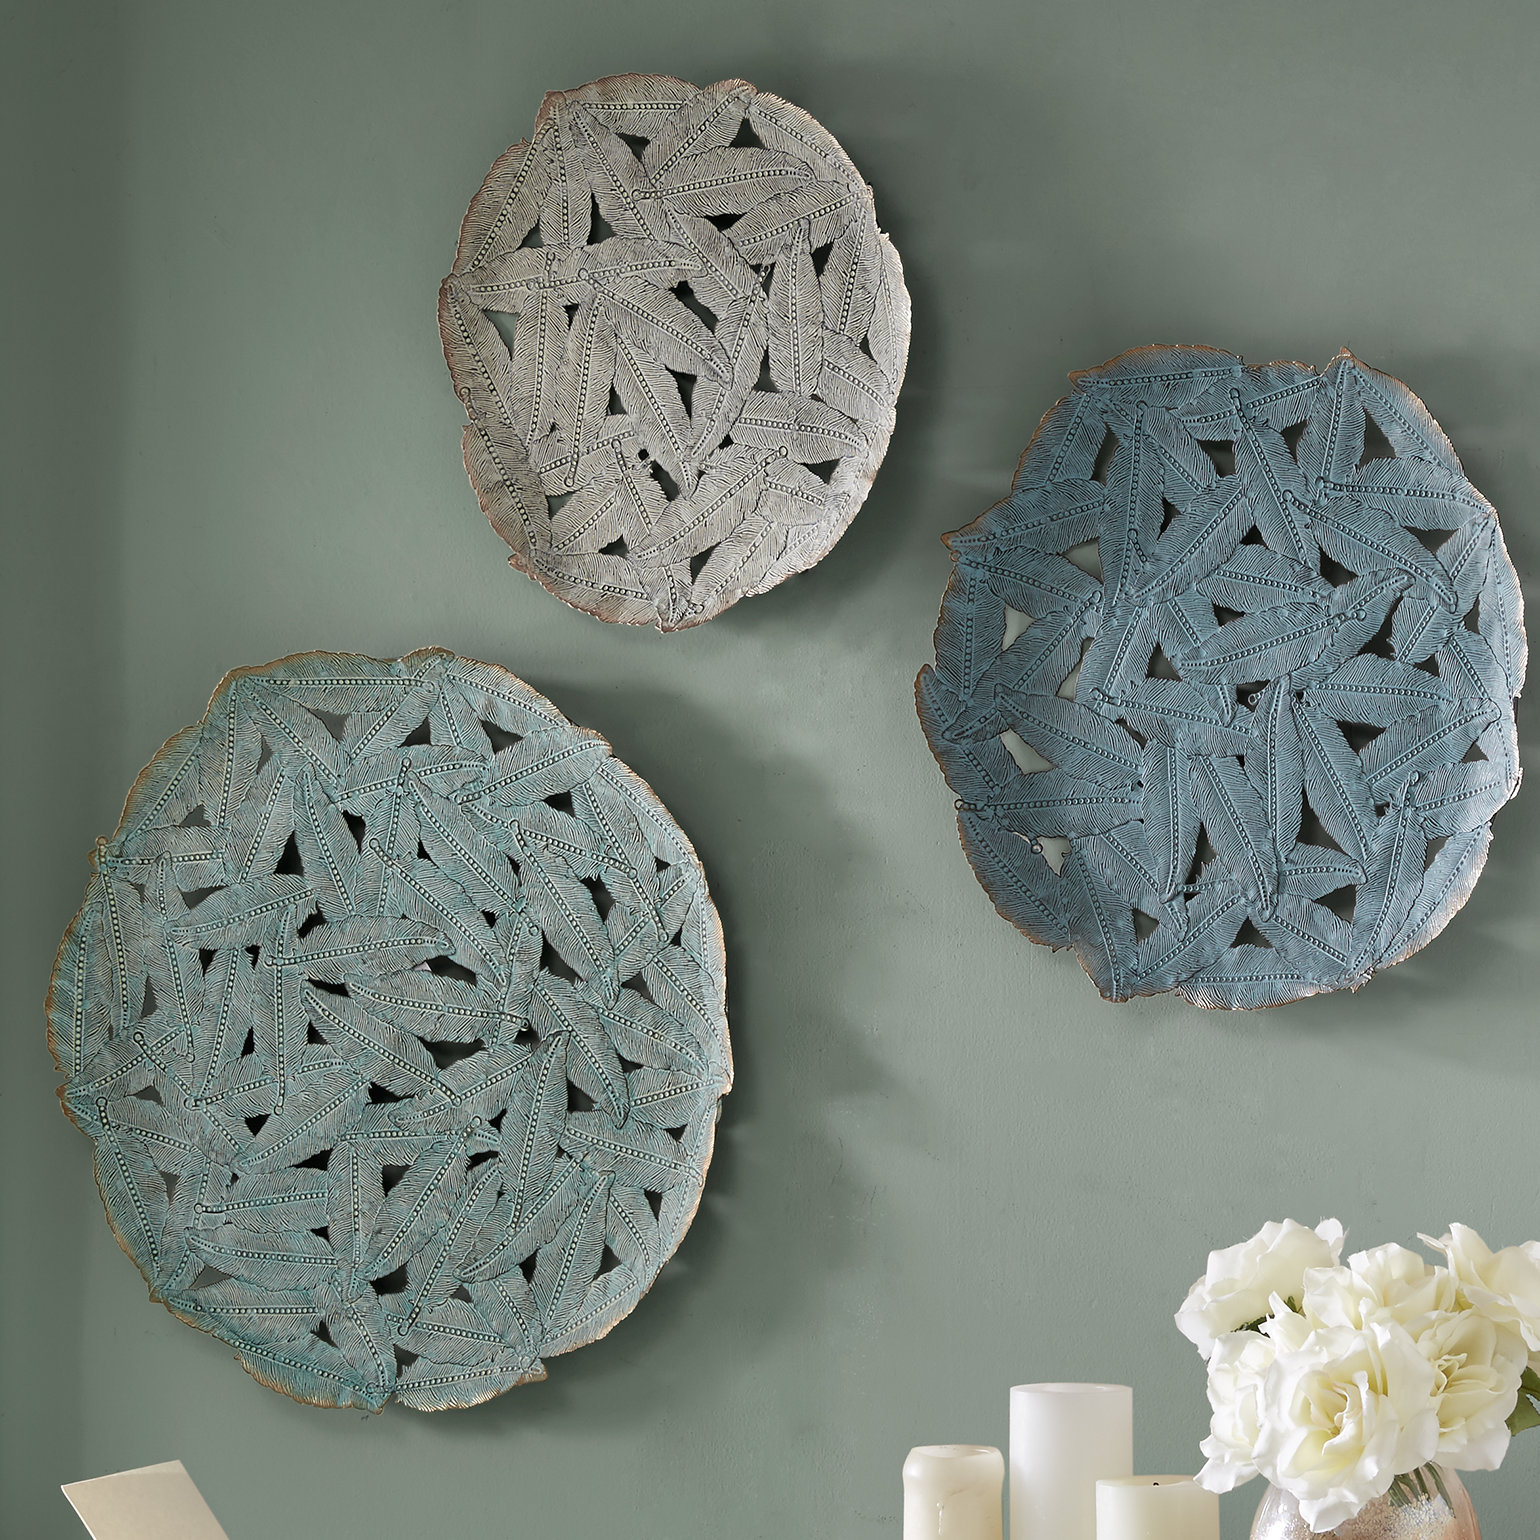 3 Piece Wall Decor Set | Wayfair with regard to 3 Piece Ceramic Flowers Wall Decor Sets (Image 9 of 30)